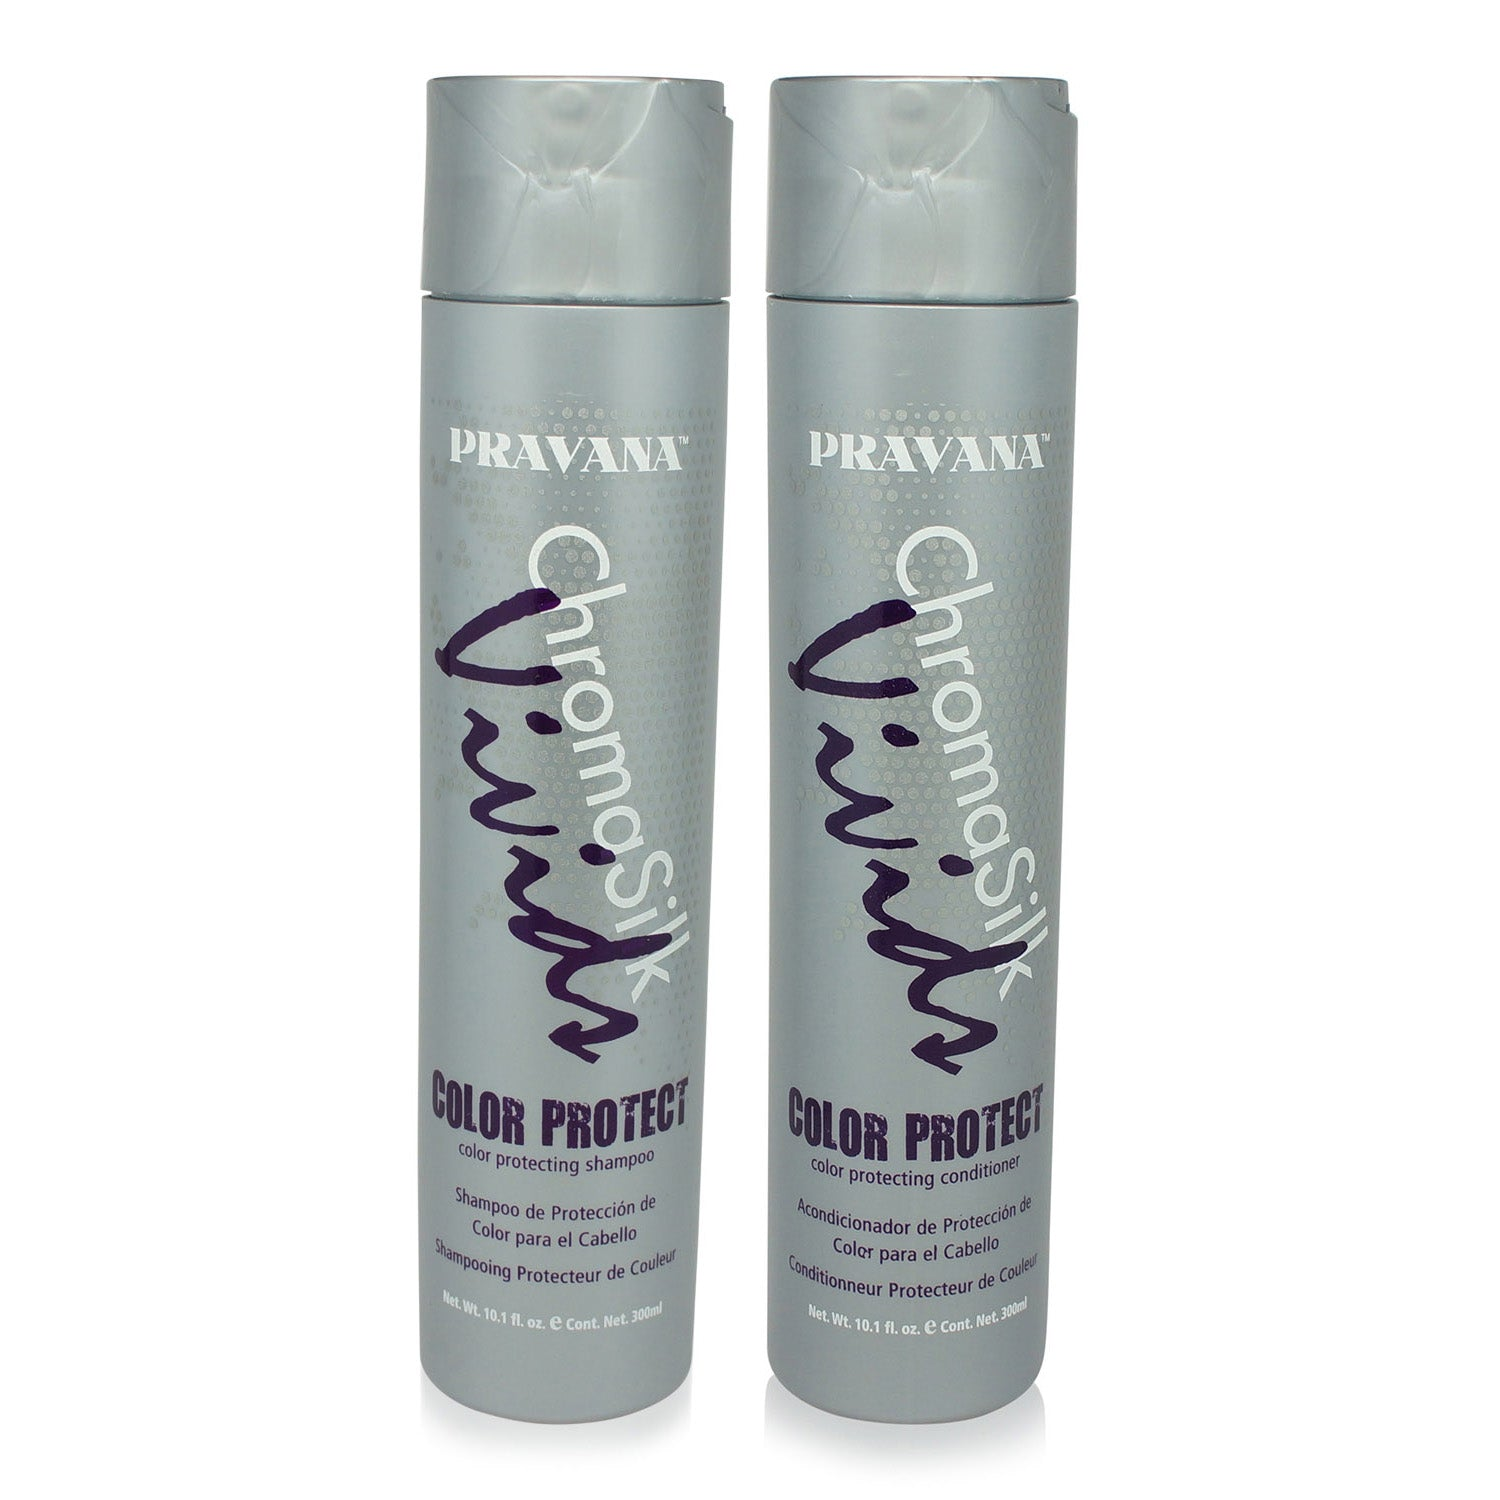 PRAVANA ~ VIVIDS SHAMPOO AND CONDITIONER 10 OZ COMBO PACK